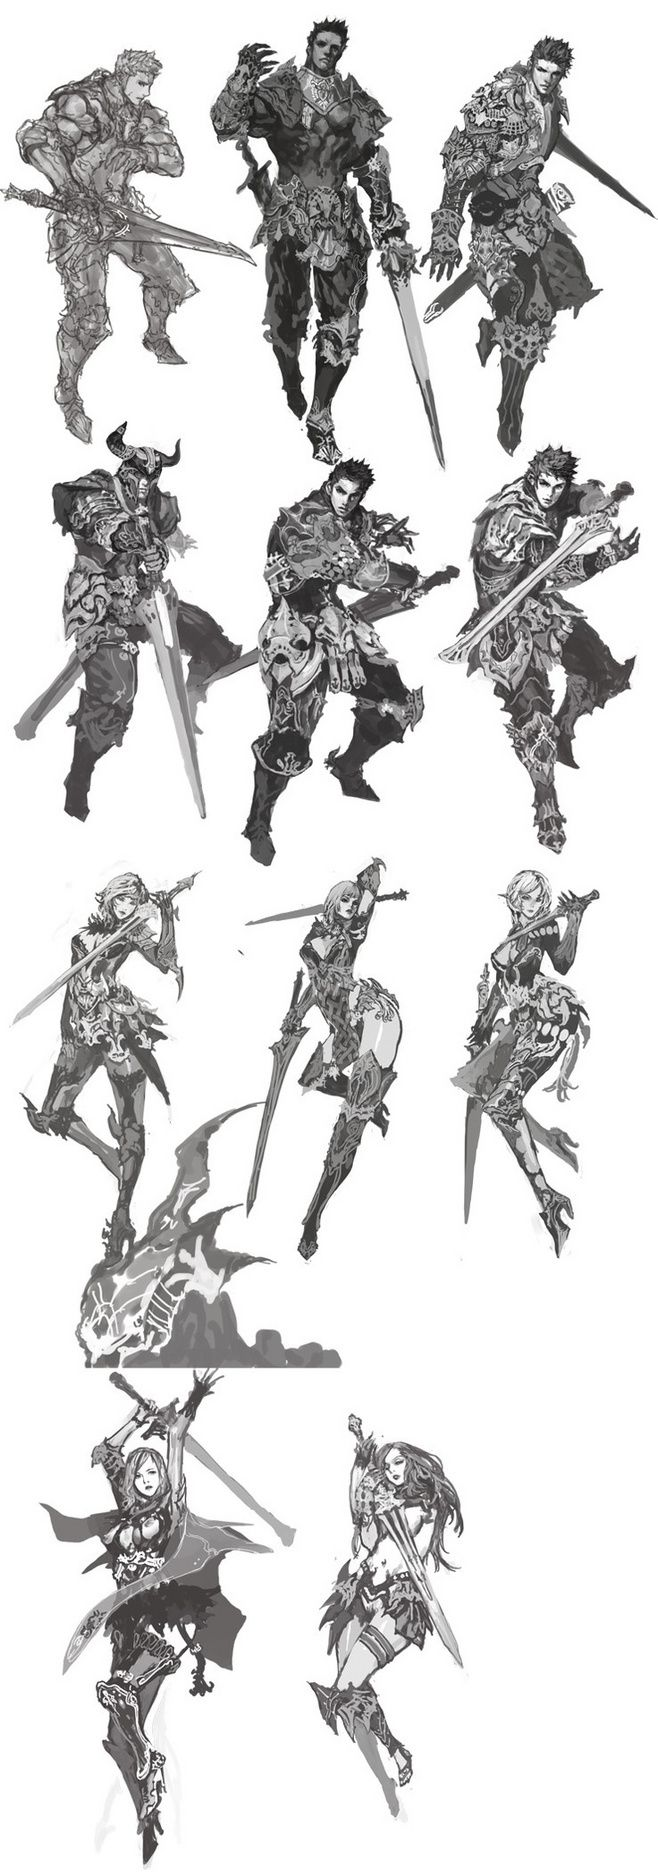 Character designs - drawing reference for holding a sword